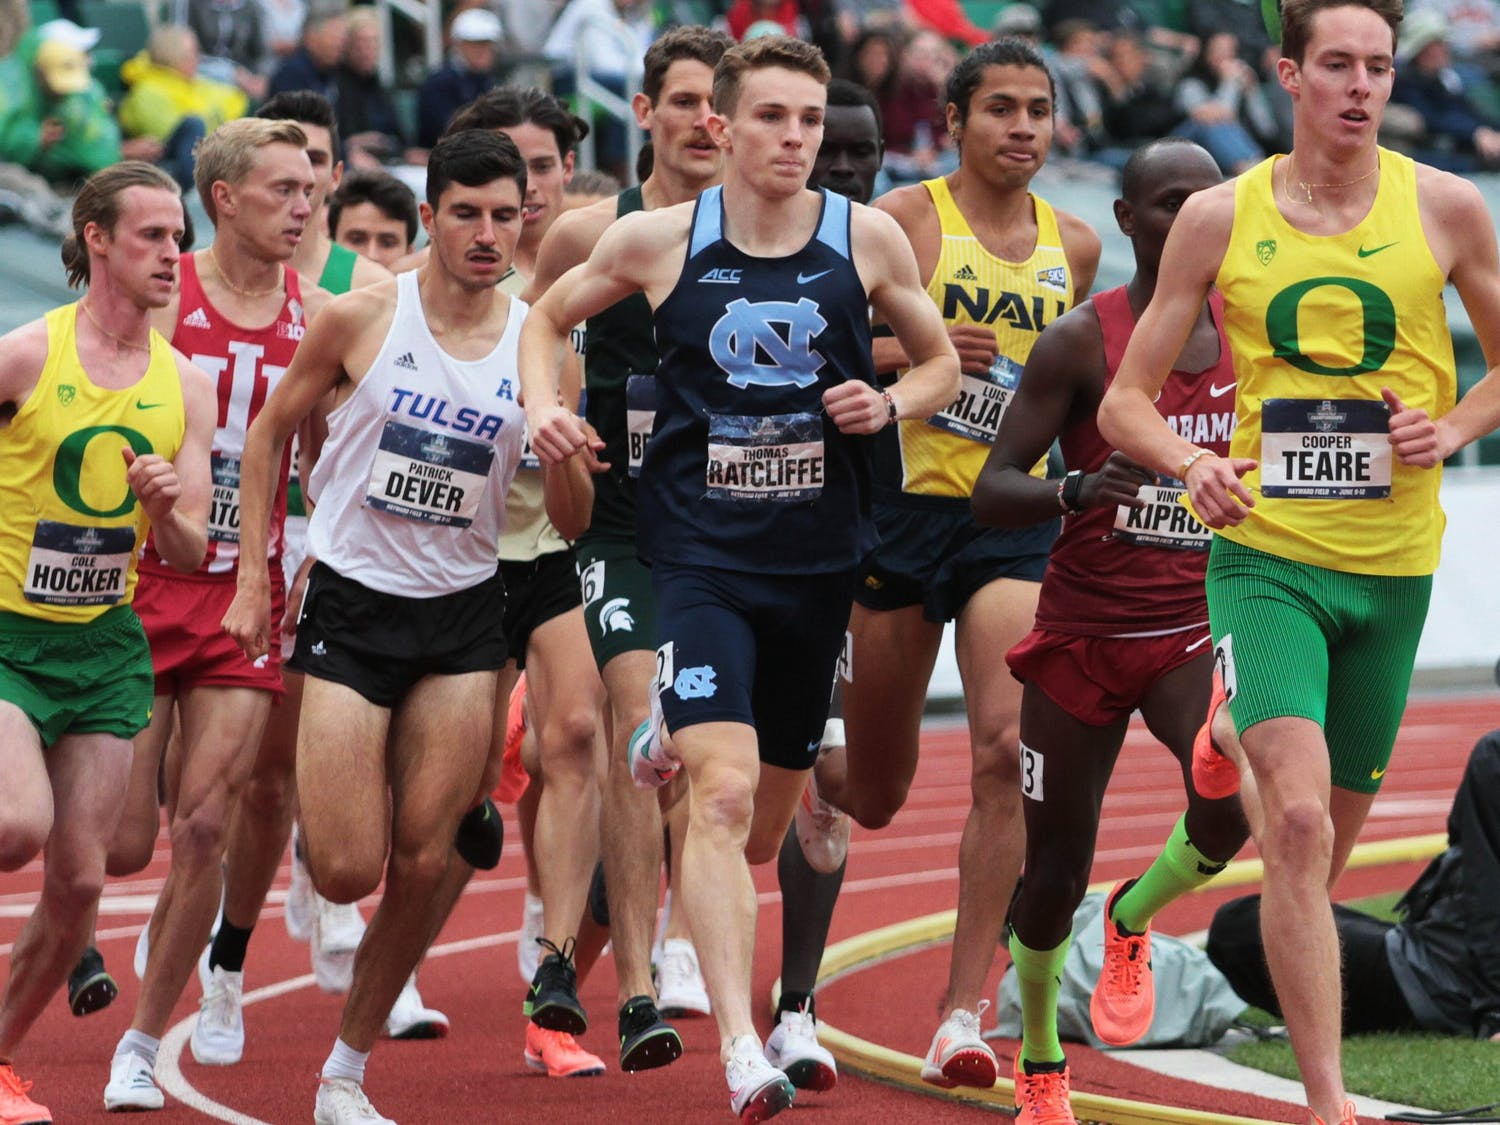 Thomas Ratcliffe runs at the NCAA Track & Field Championships at the Hayward Field in Eugene, OR on Friday, June 11, 2021. Photo courtesy of Rick Morgan/UNC Athletic Communications.